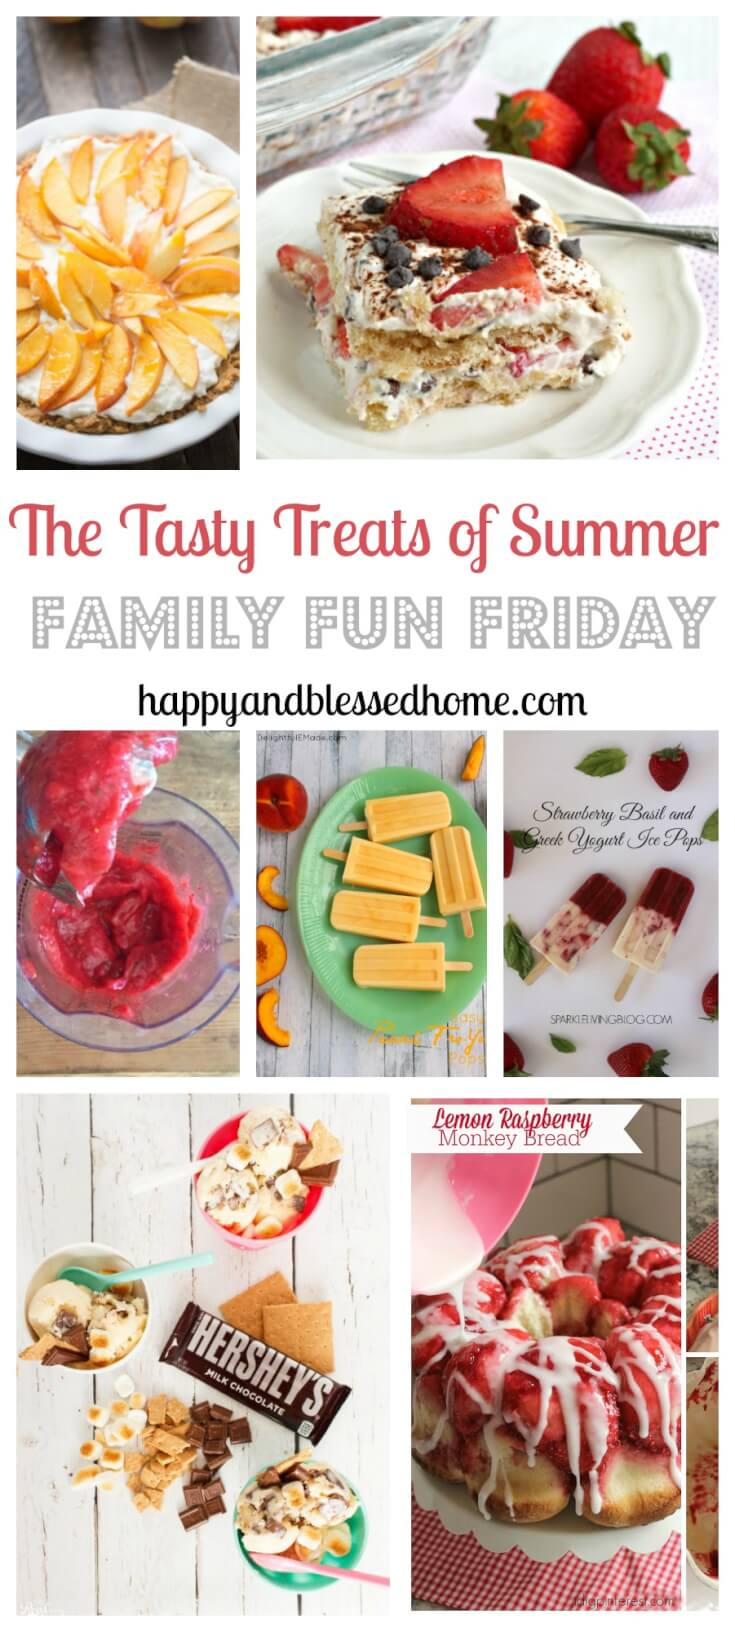 The Tasty Treats of Summer on Family Fun Friday